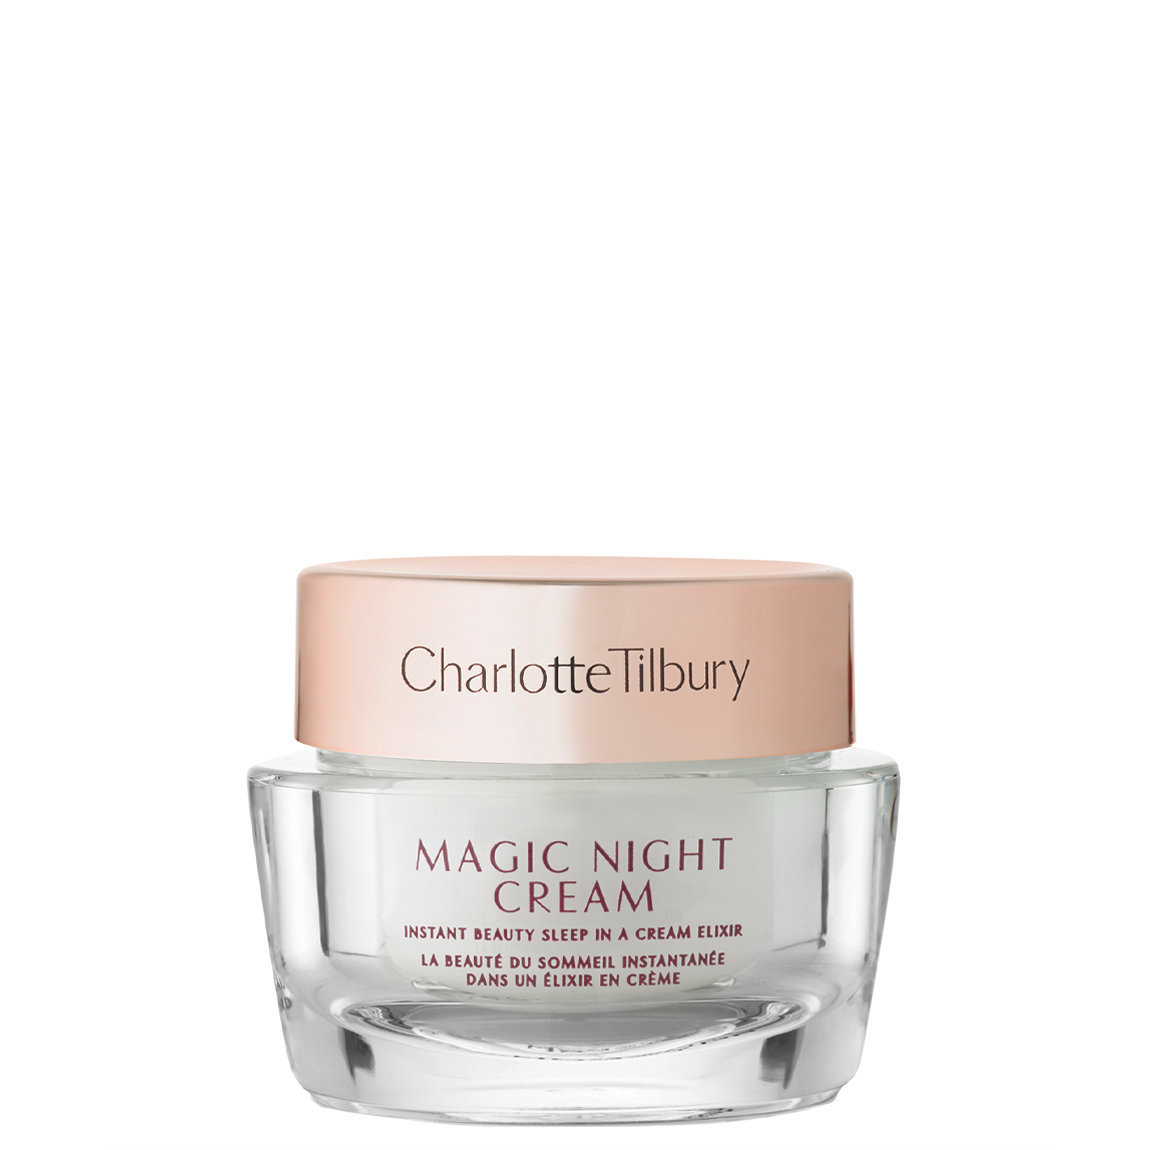 Charlotte Tilbury Magic Night Cream Travel Size alternative view 1 - product swatch.